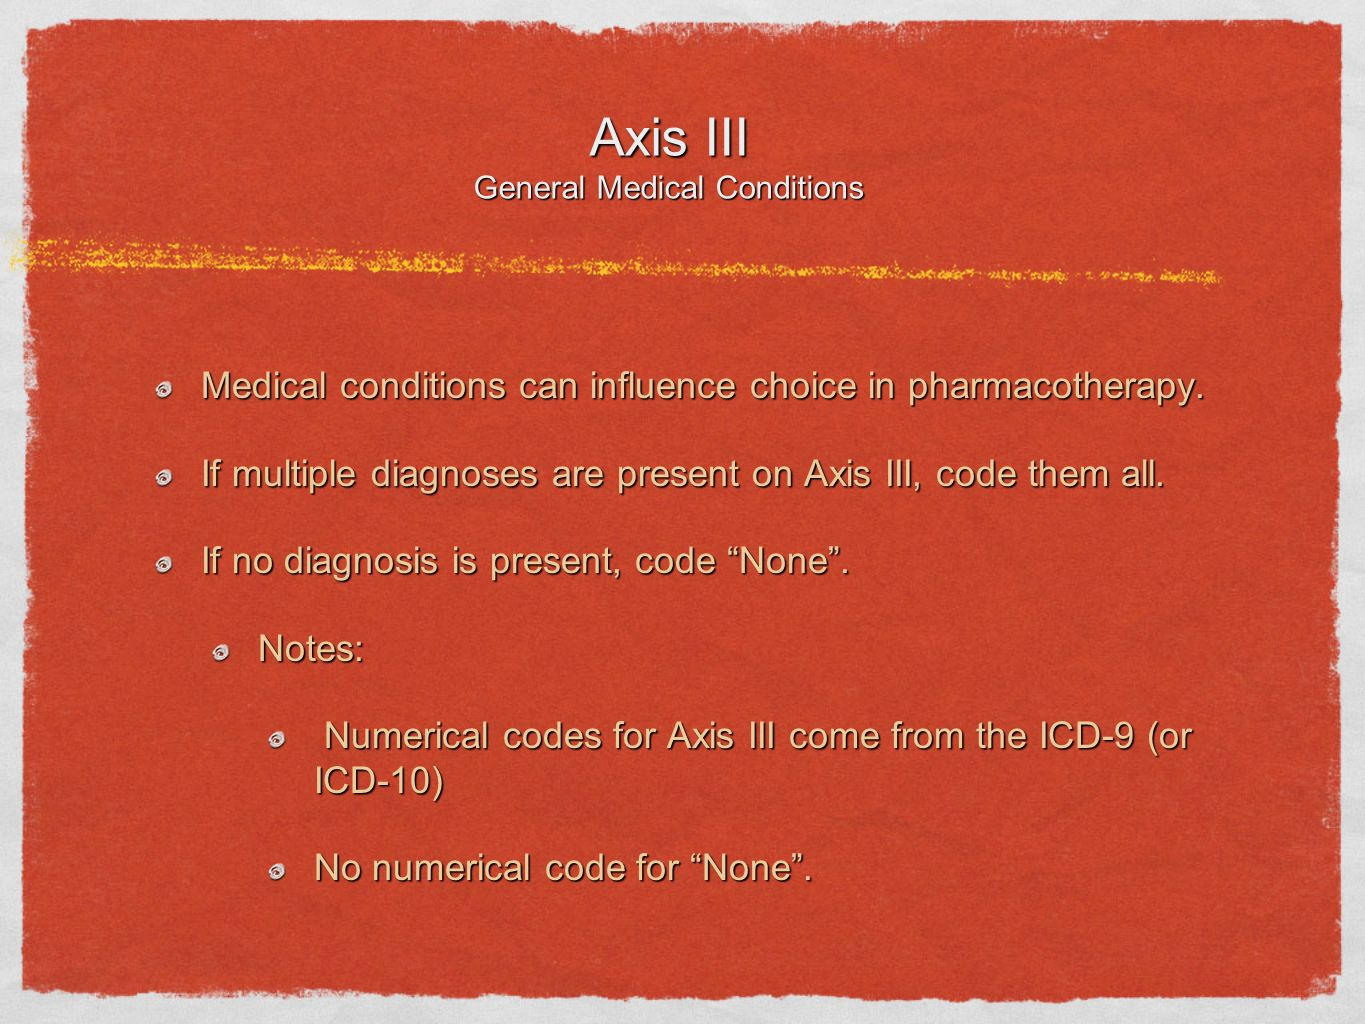 Axis III General Medical Conditions